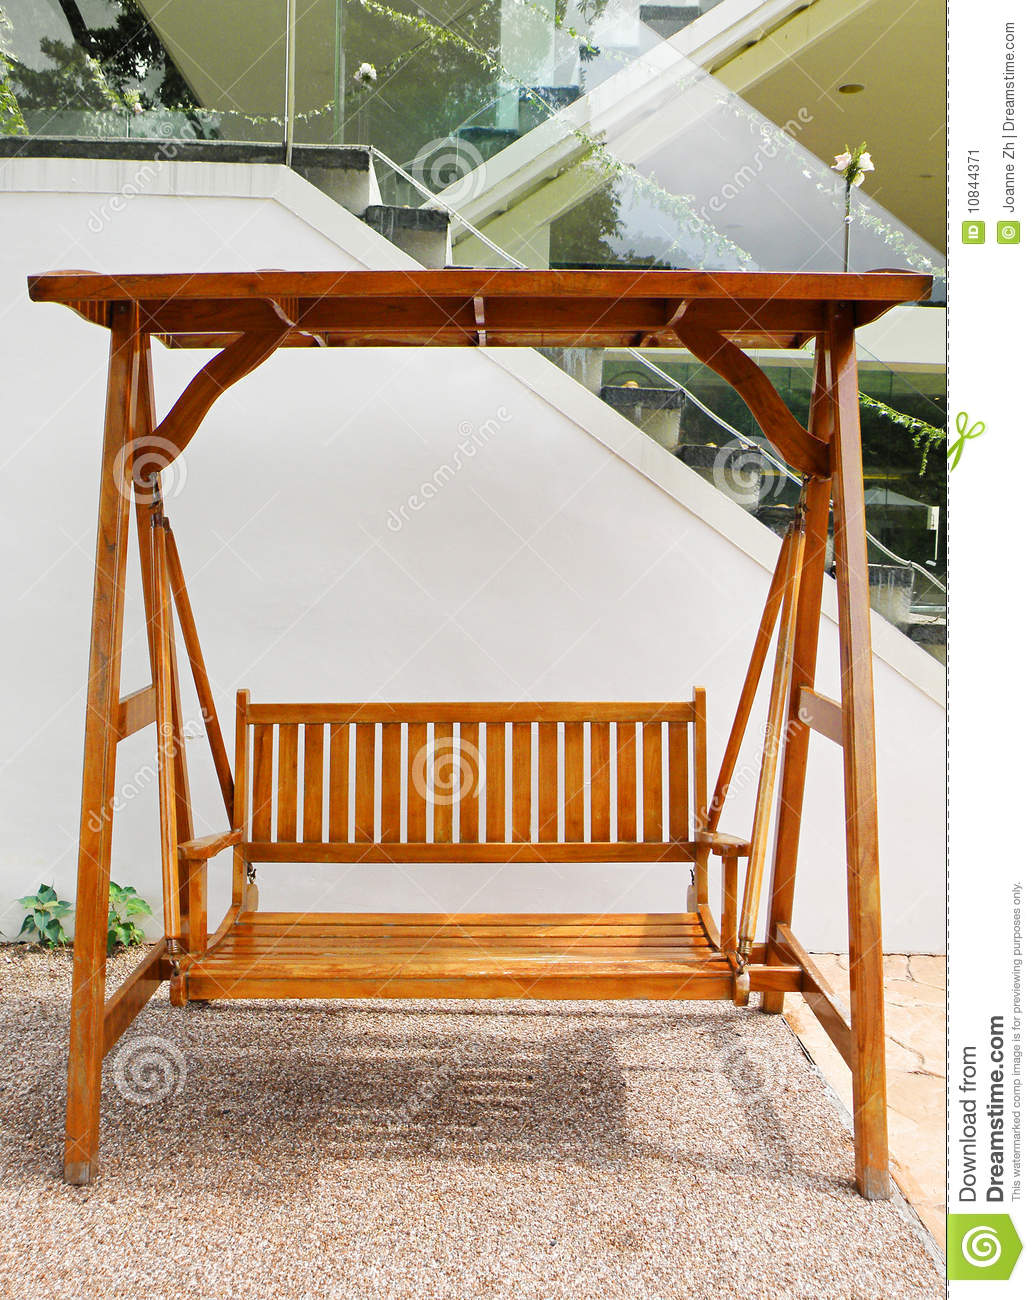 Wooden Swing With Double Seat Outdoors Stock Image Image Of Patios